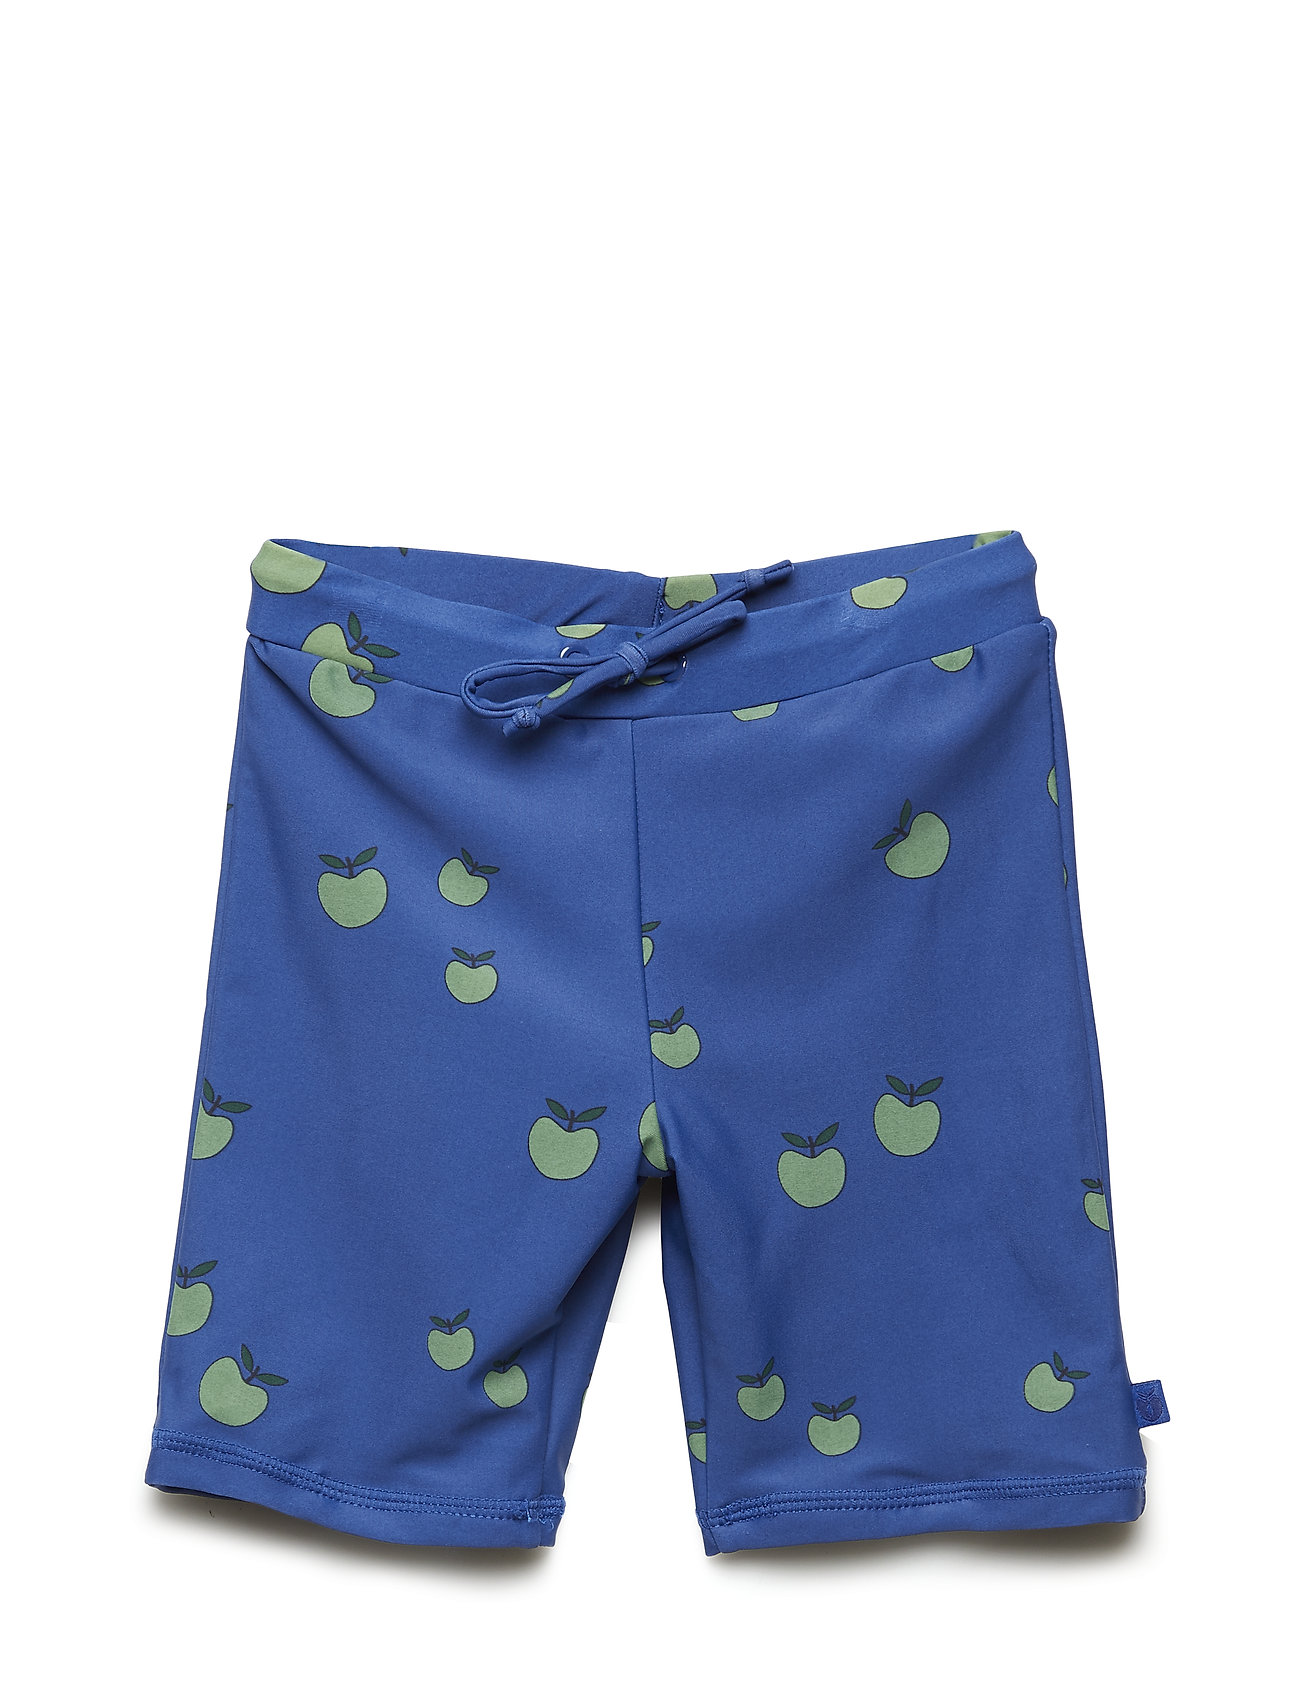 Småfolk Swim shorts, long. Apple